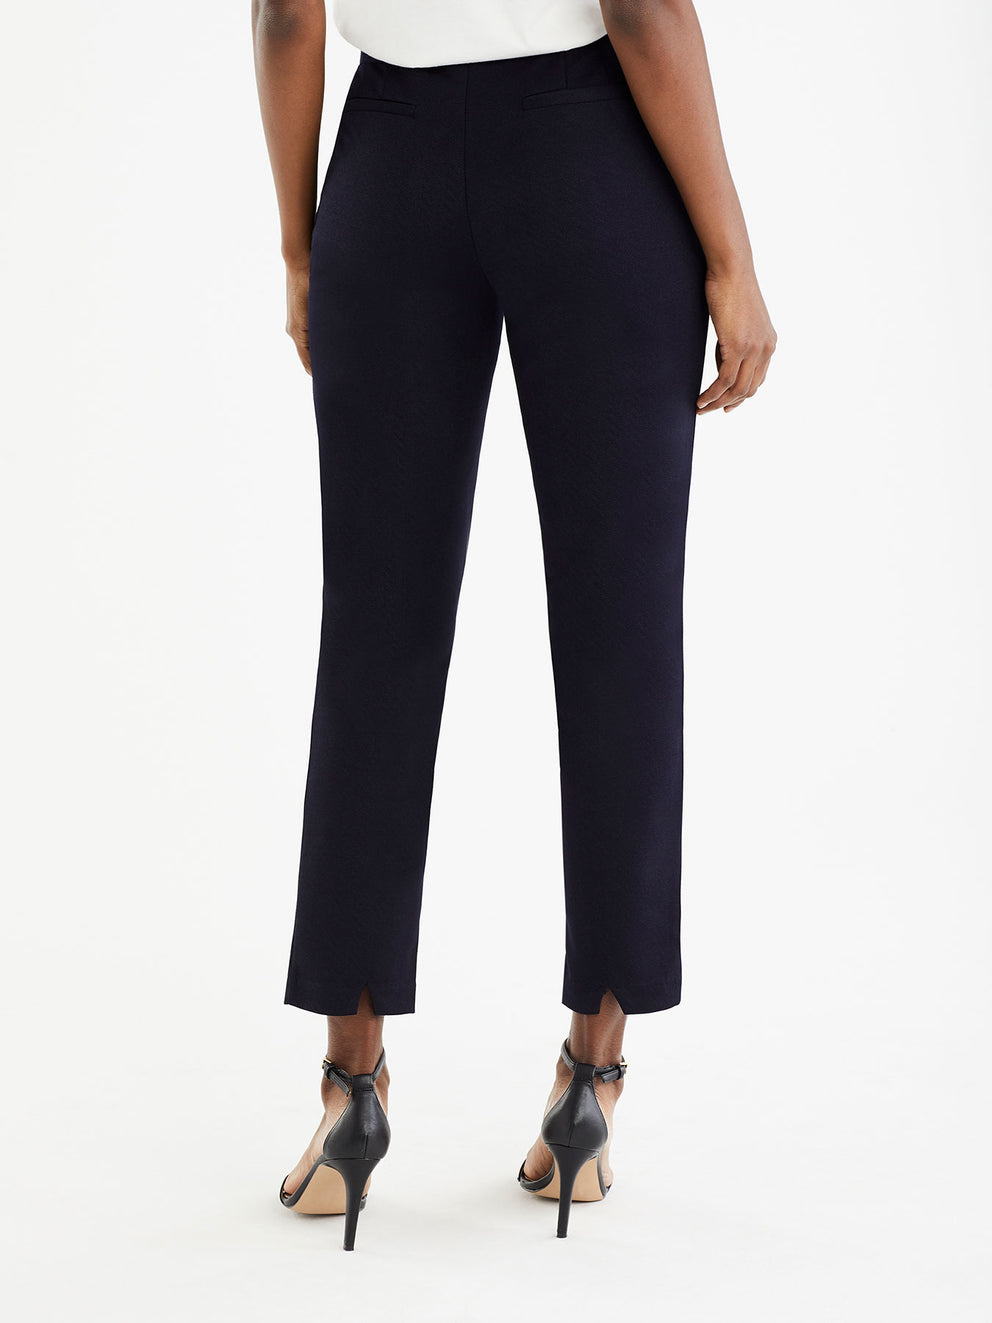 The Jones New York Ponte Shadow Plaid Pull-On Pant in color Navy - Image Position 3